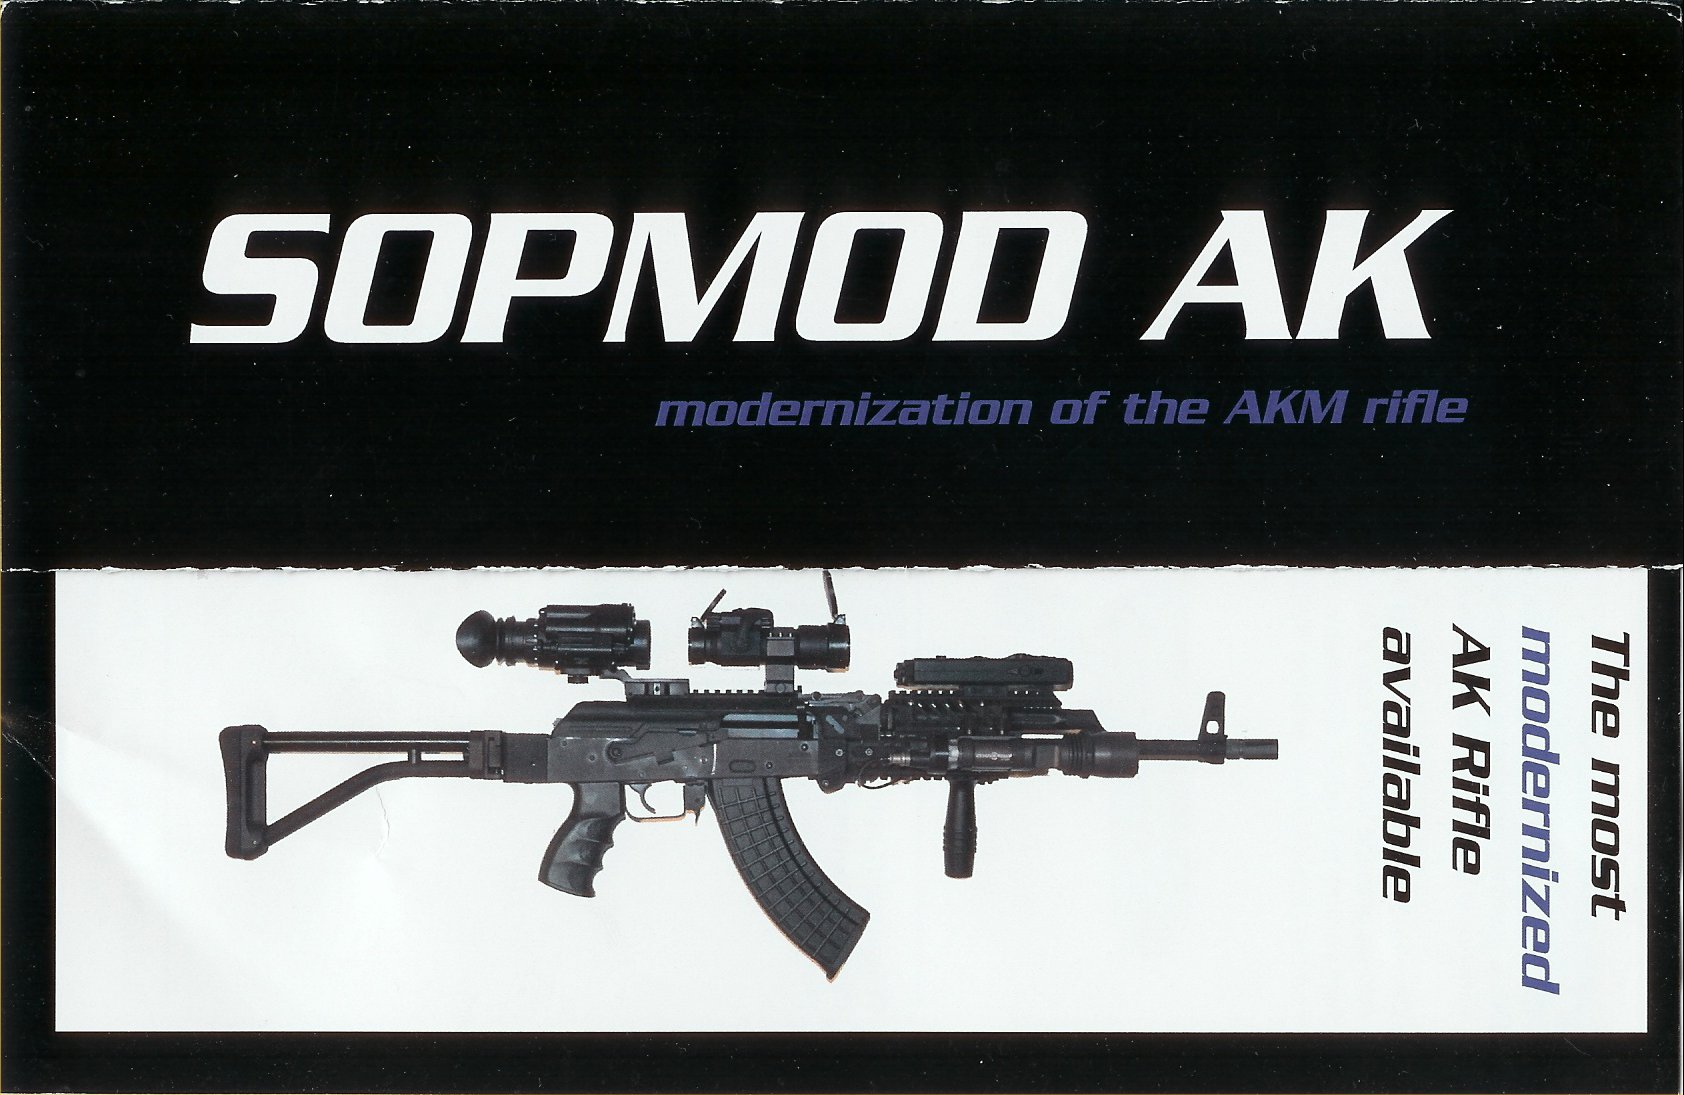 BHI%20SOPMOD%20AK 1 Horizontal <!  :en  >BHI SOPMOD AK: Modernized AKM/Kalashnikov for SPECOPS and PSD/Security Operators<!  :  >